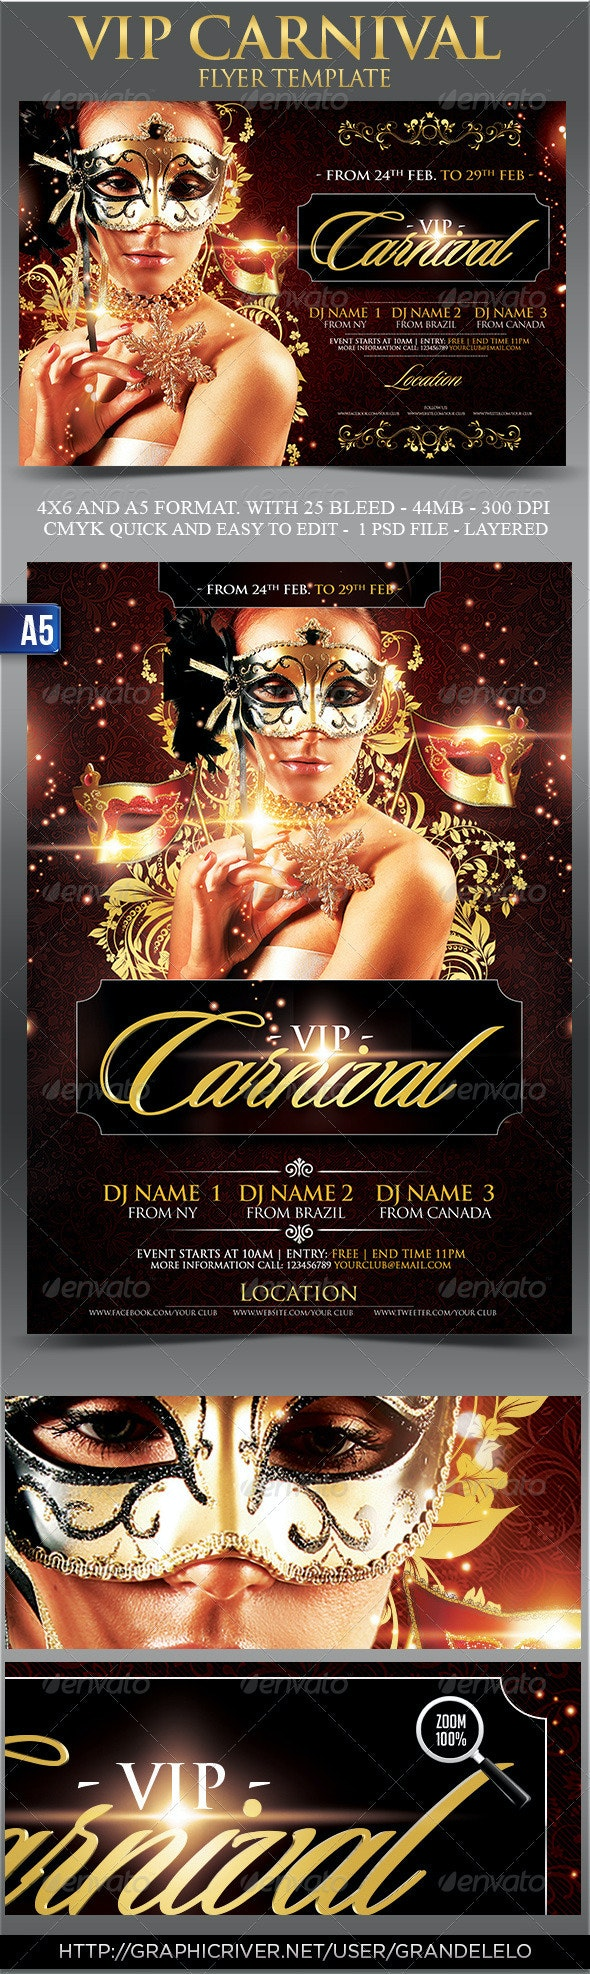 Vip Carnival Flyer Template - Clubs & Parties Events